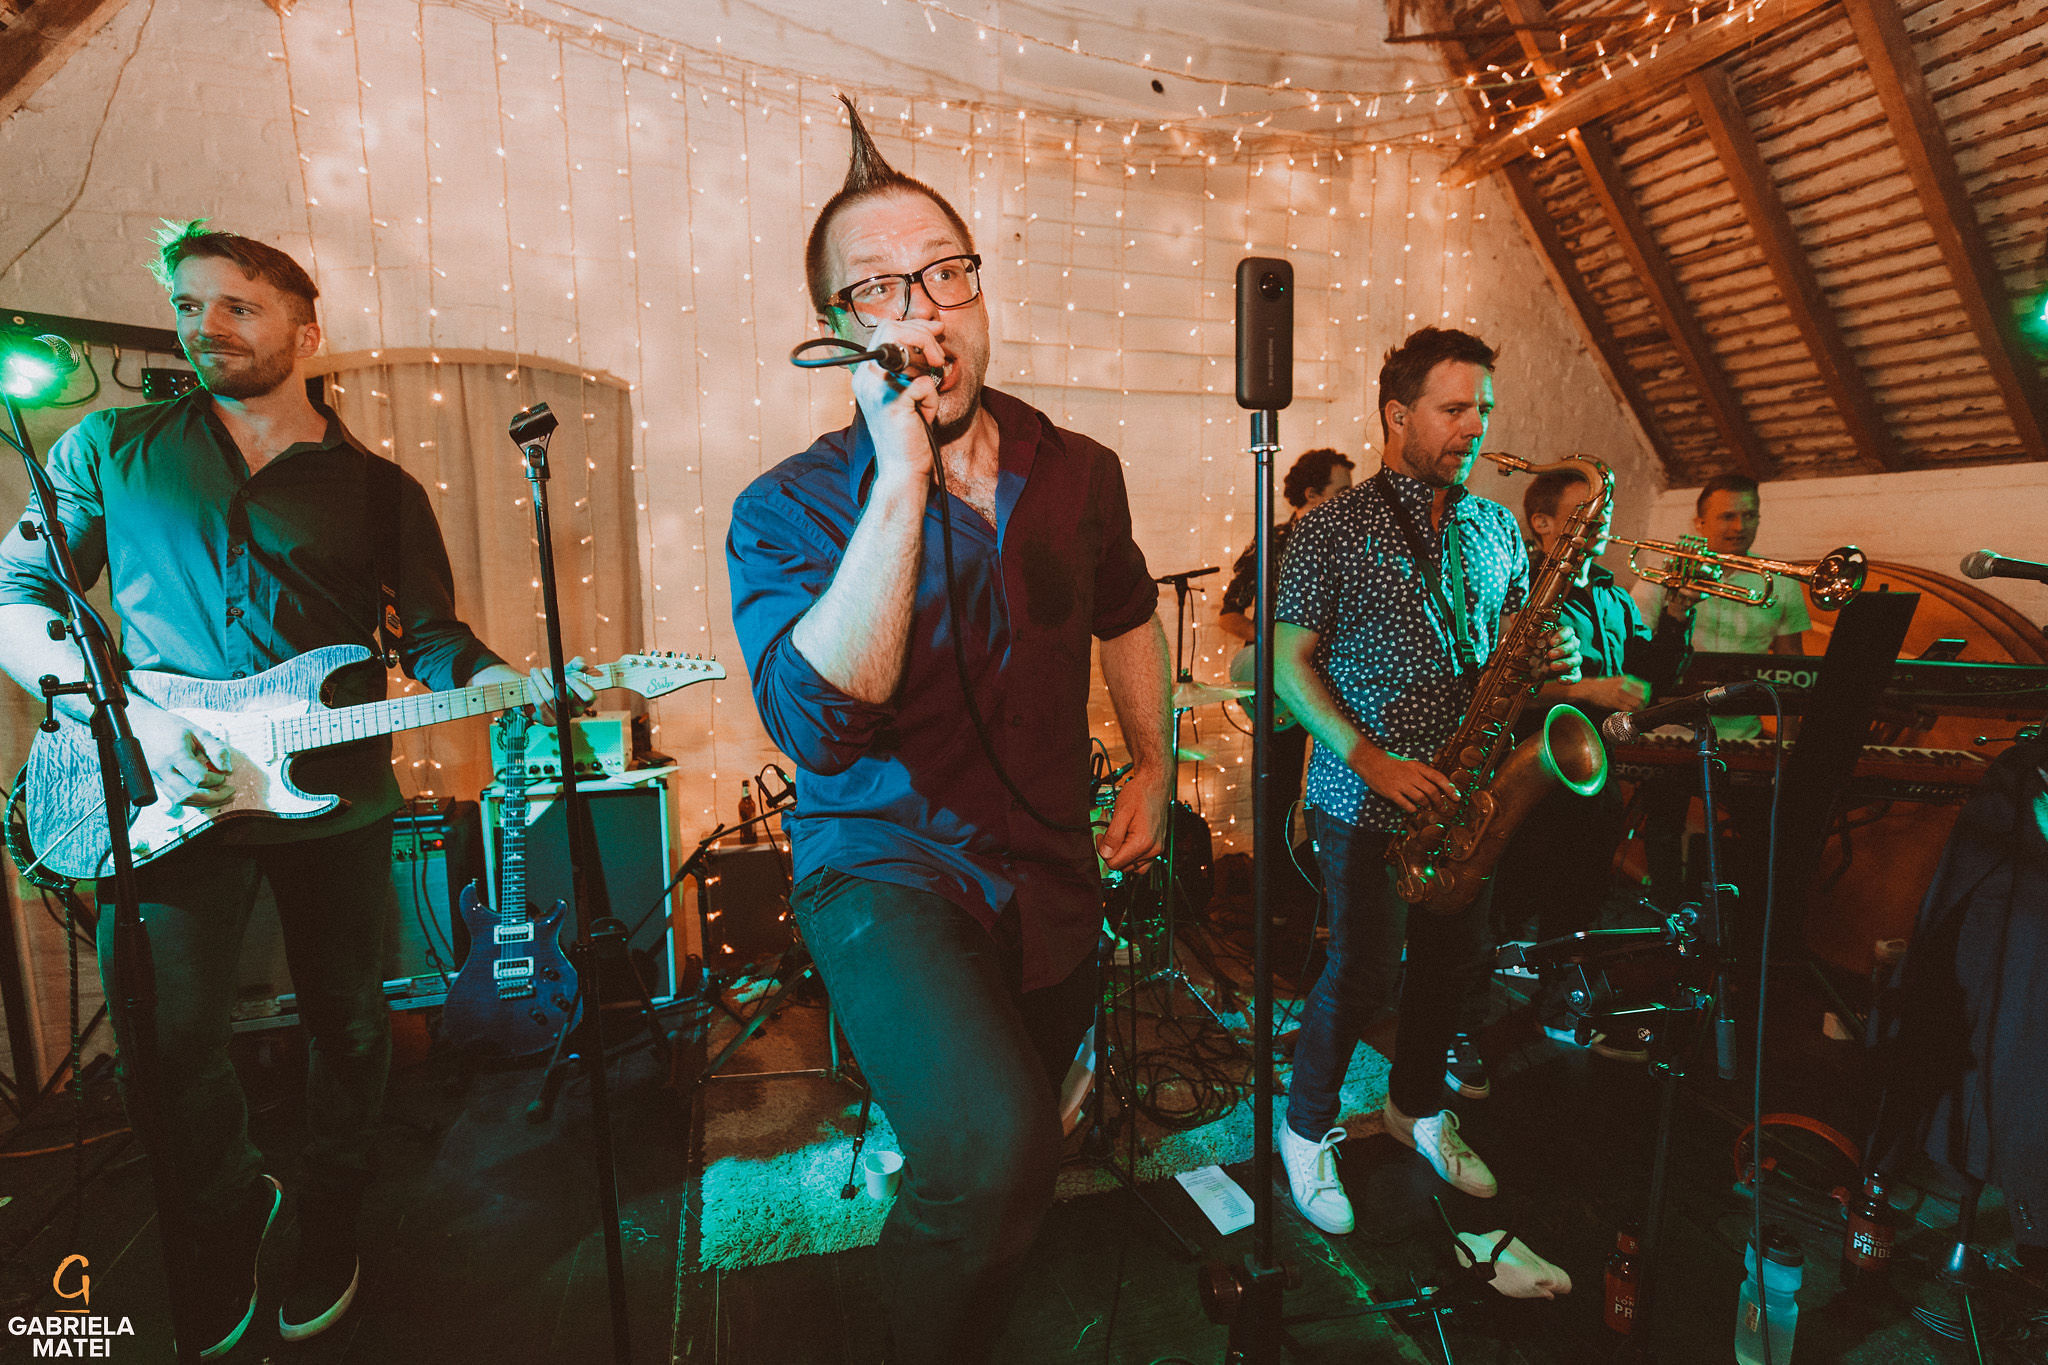 Music band singing at South Stoke Barn wedding venue in Arundel by gabriela matei sussex photographer